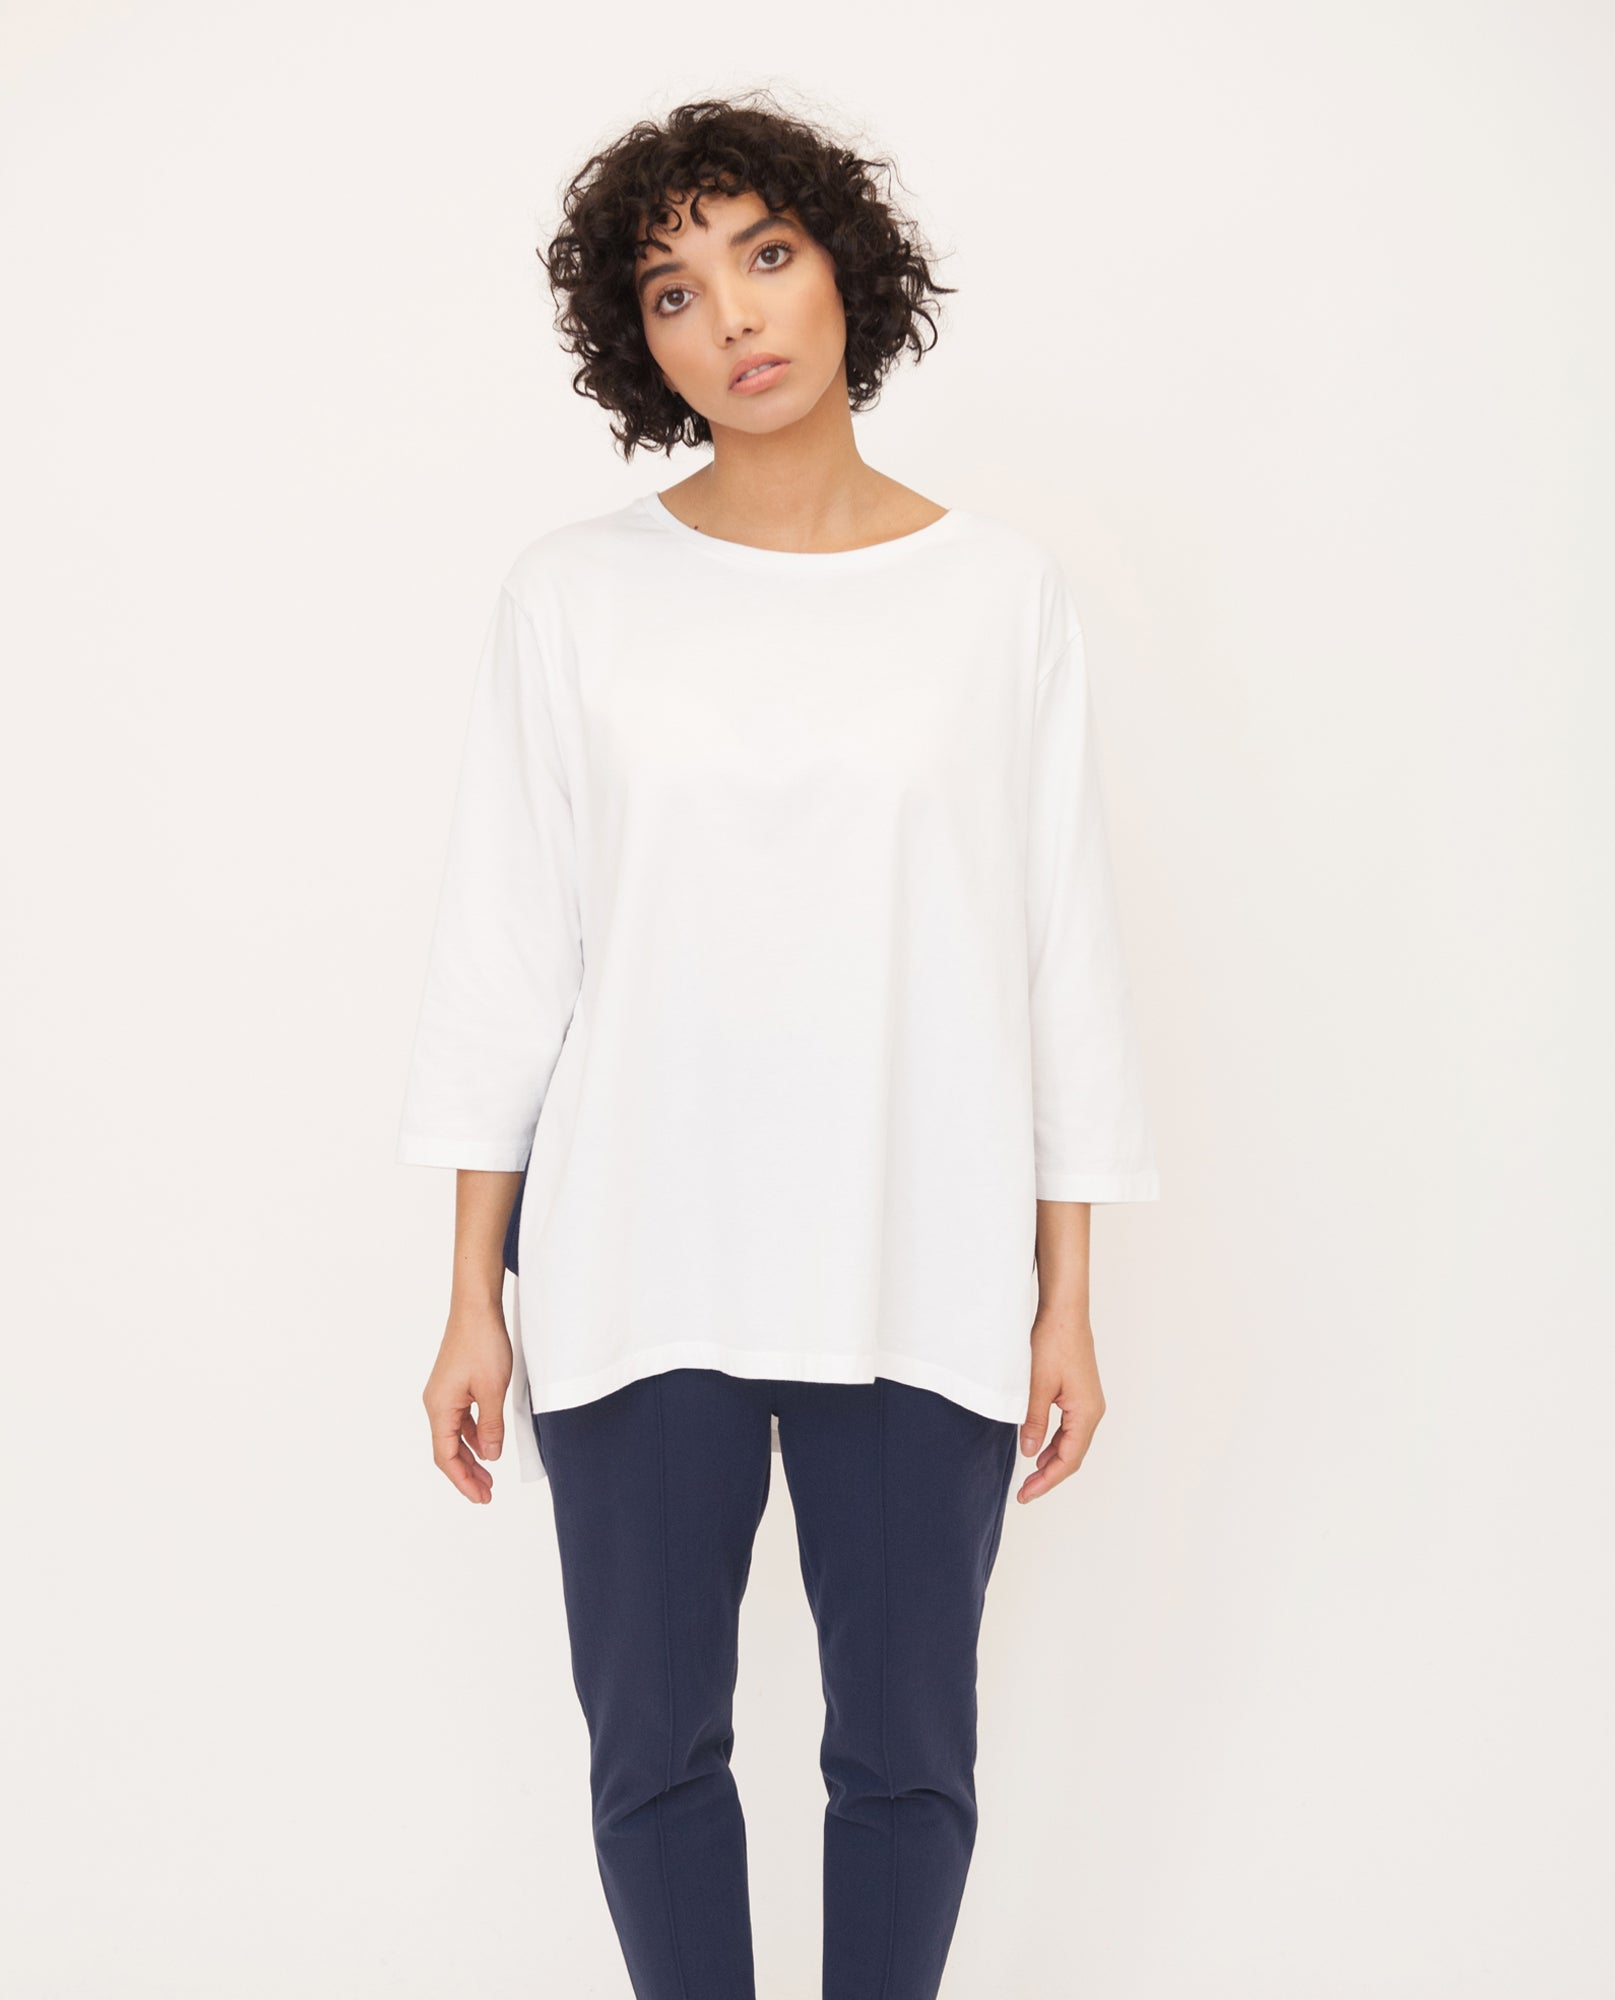 HATTIE Organic Cotton Top In Off White